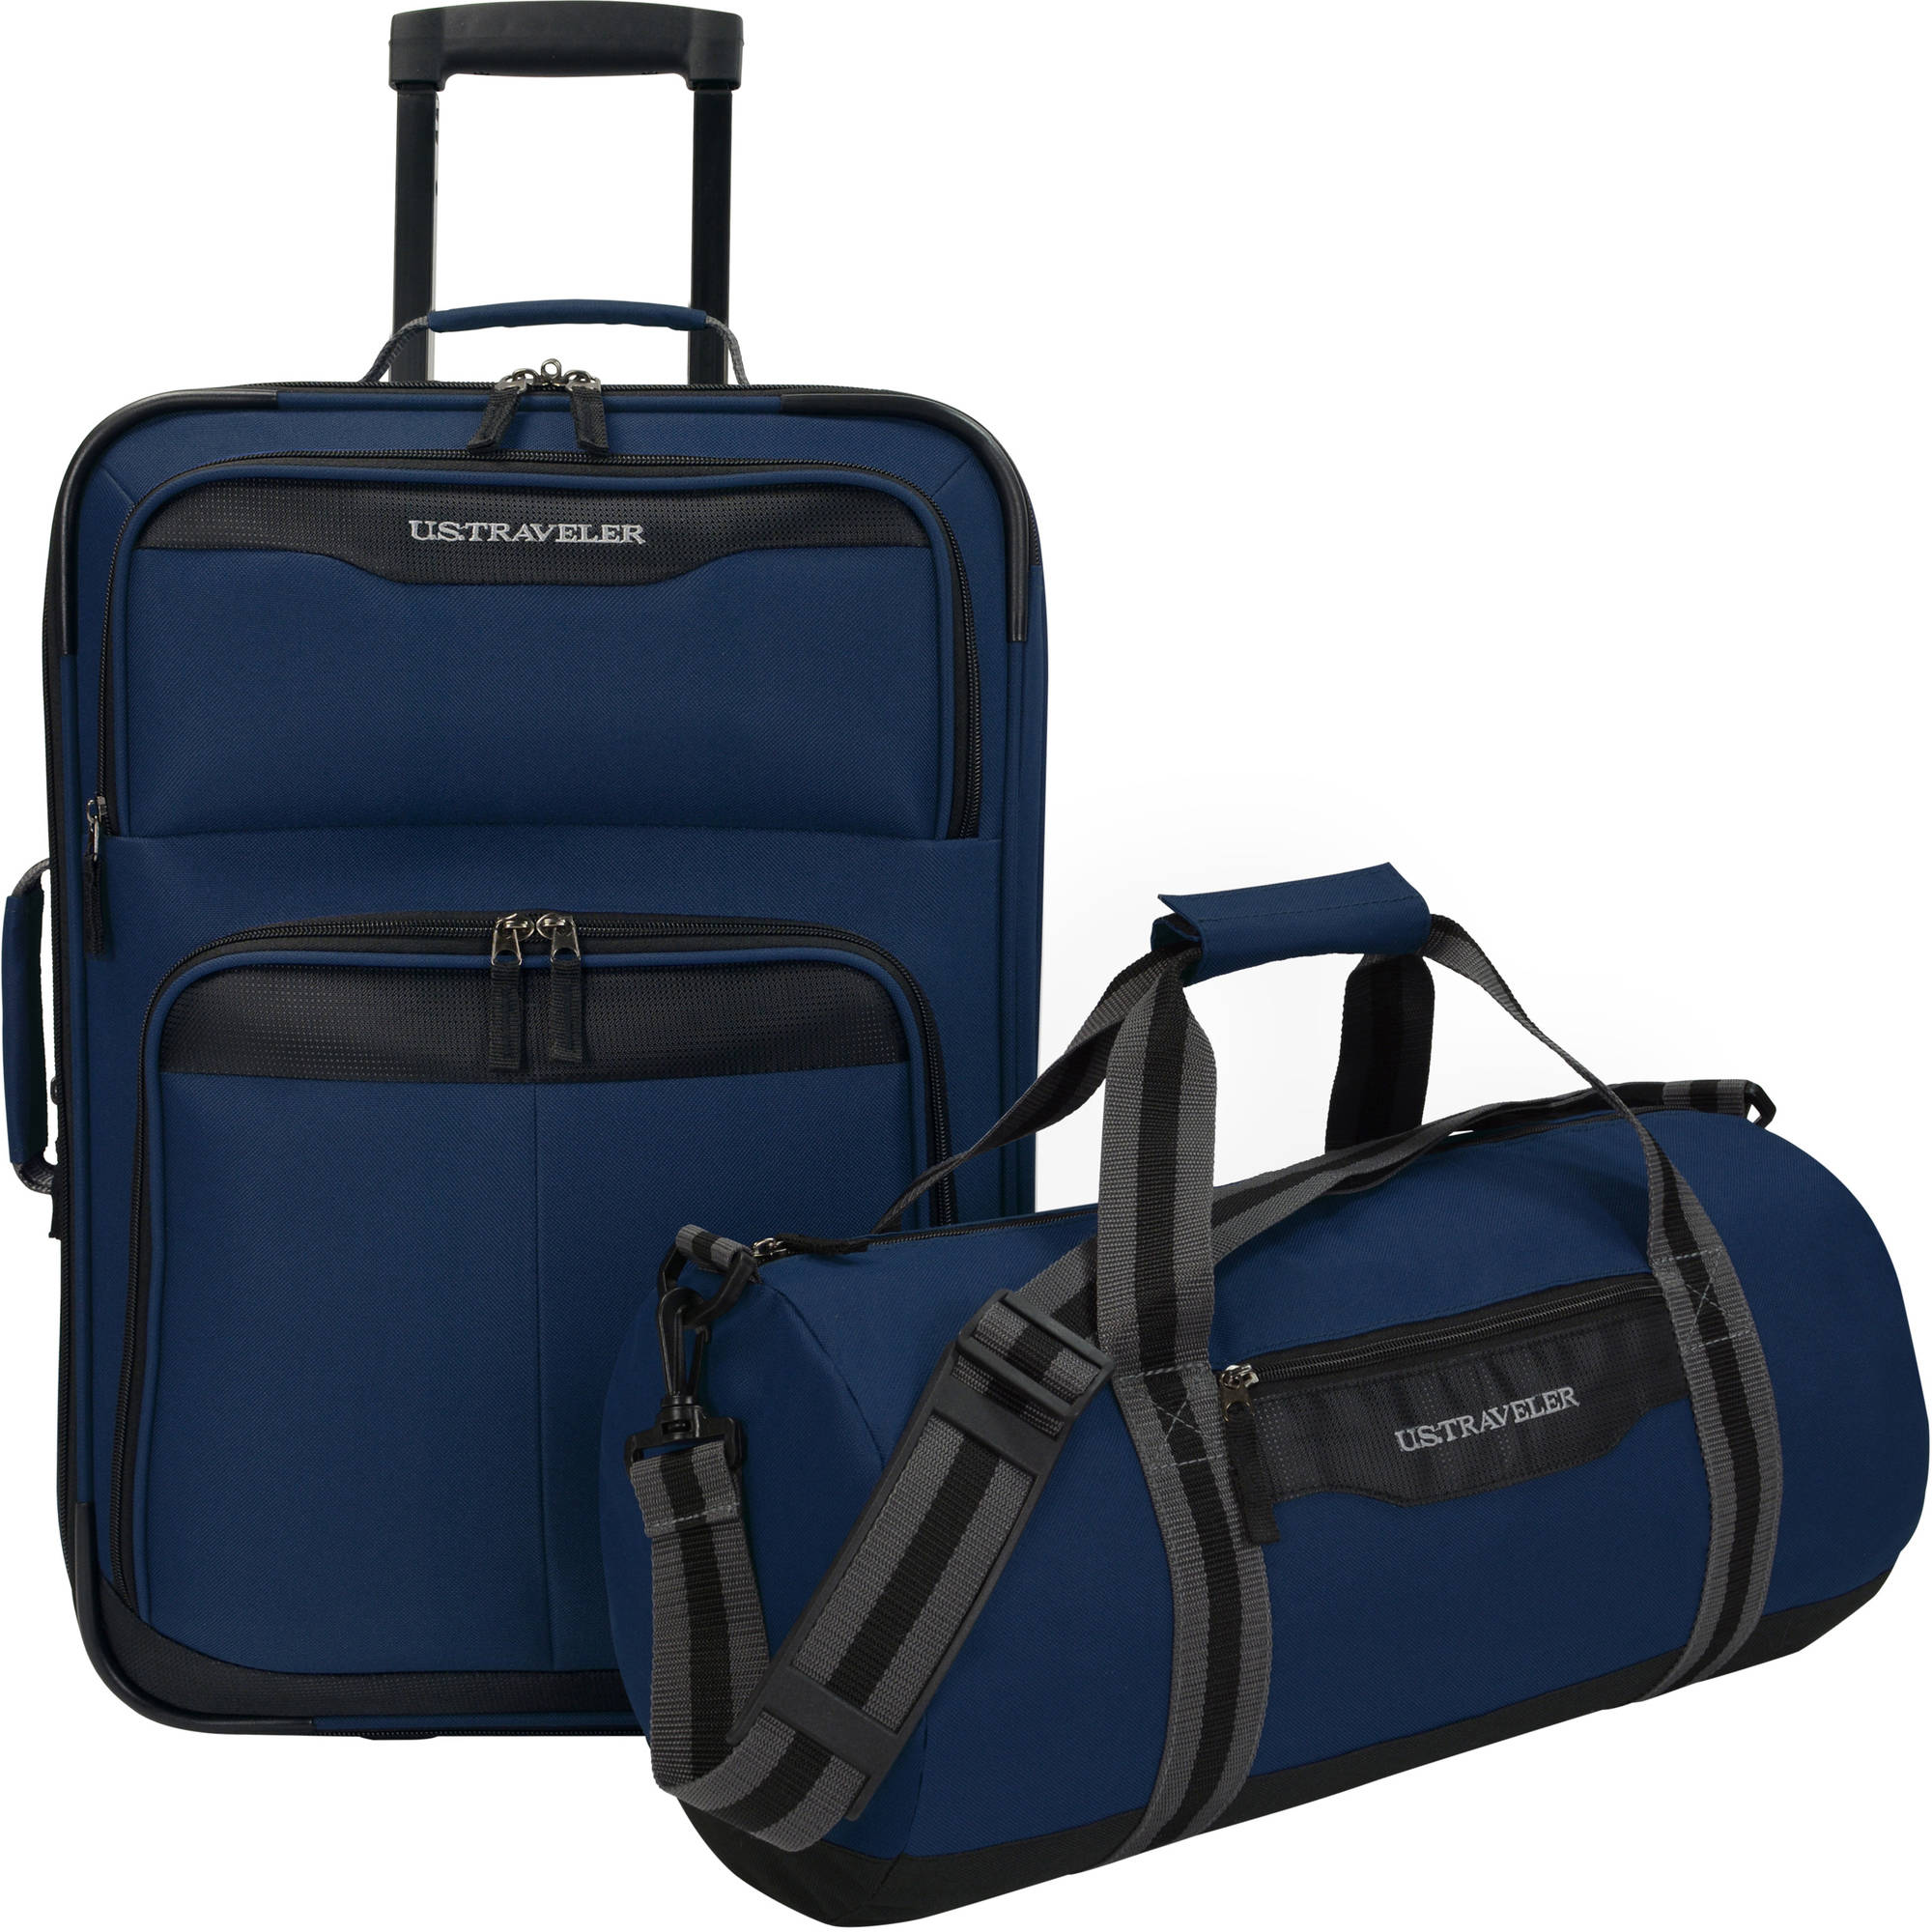 U.S. Traveler Hillstar 2-Piece Casual Luggage Set